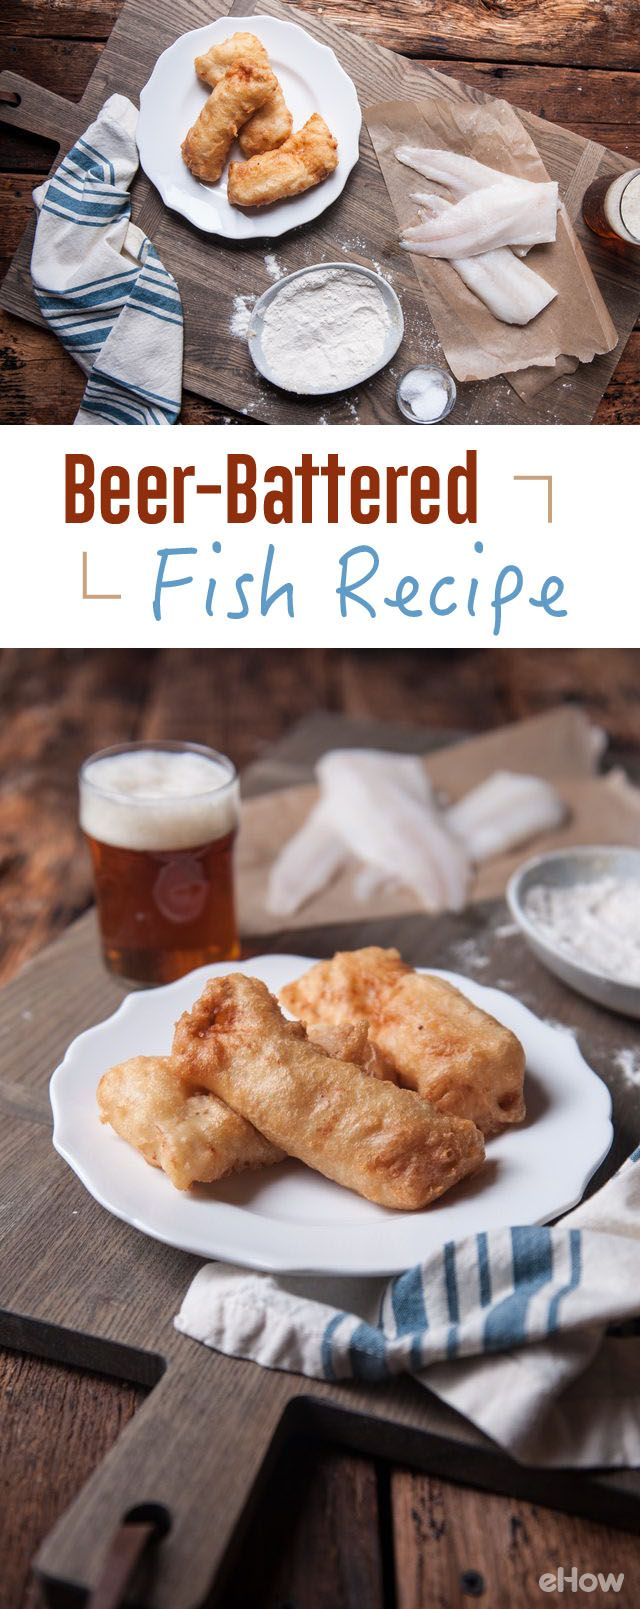 Beer-battered fish is great for crispy fish and chips or even a great fish taco! Easier to make than you would think, plus you get to pair it with the beer you cooked it in, making it a complete meal! Recipe here: http://www.ehow.com/how_16161_make-beer-batter.html?utm_source=pinterest.com&utm_medium=referral&utm_content=freestyle&utm_campaign=fanpage